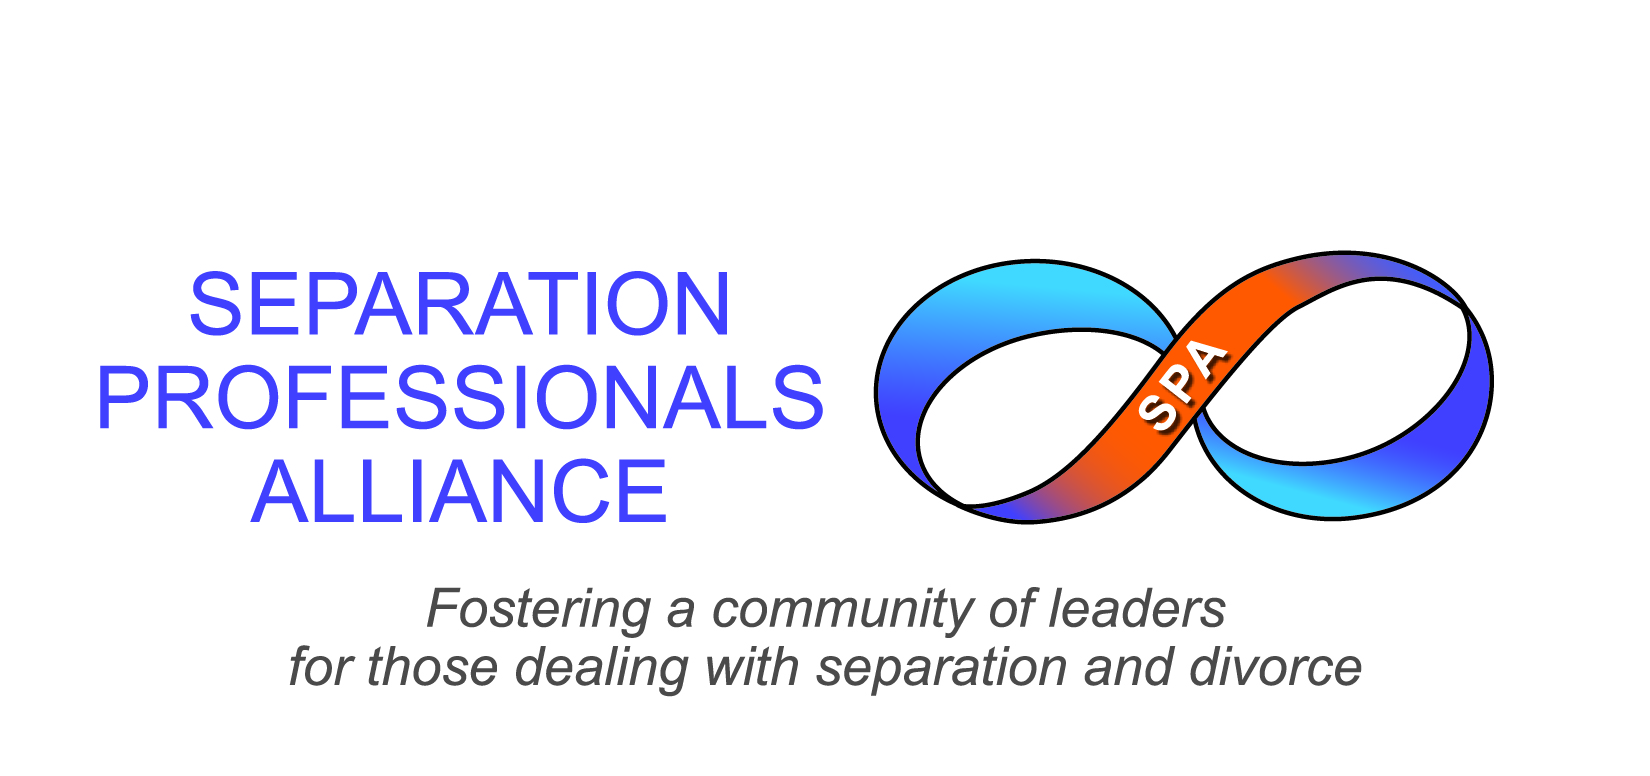 Separation Professionals Alliance